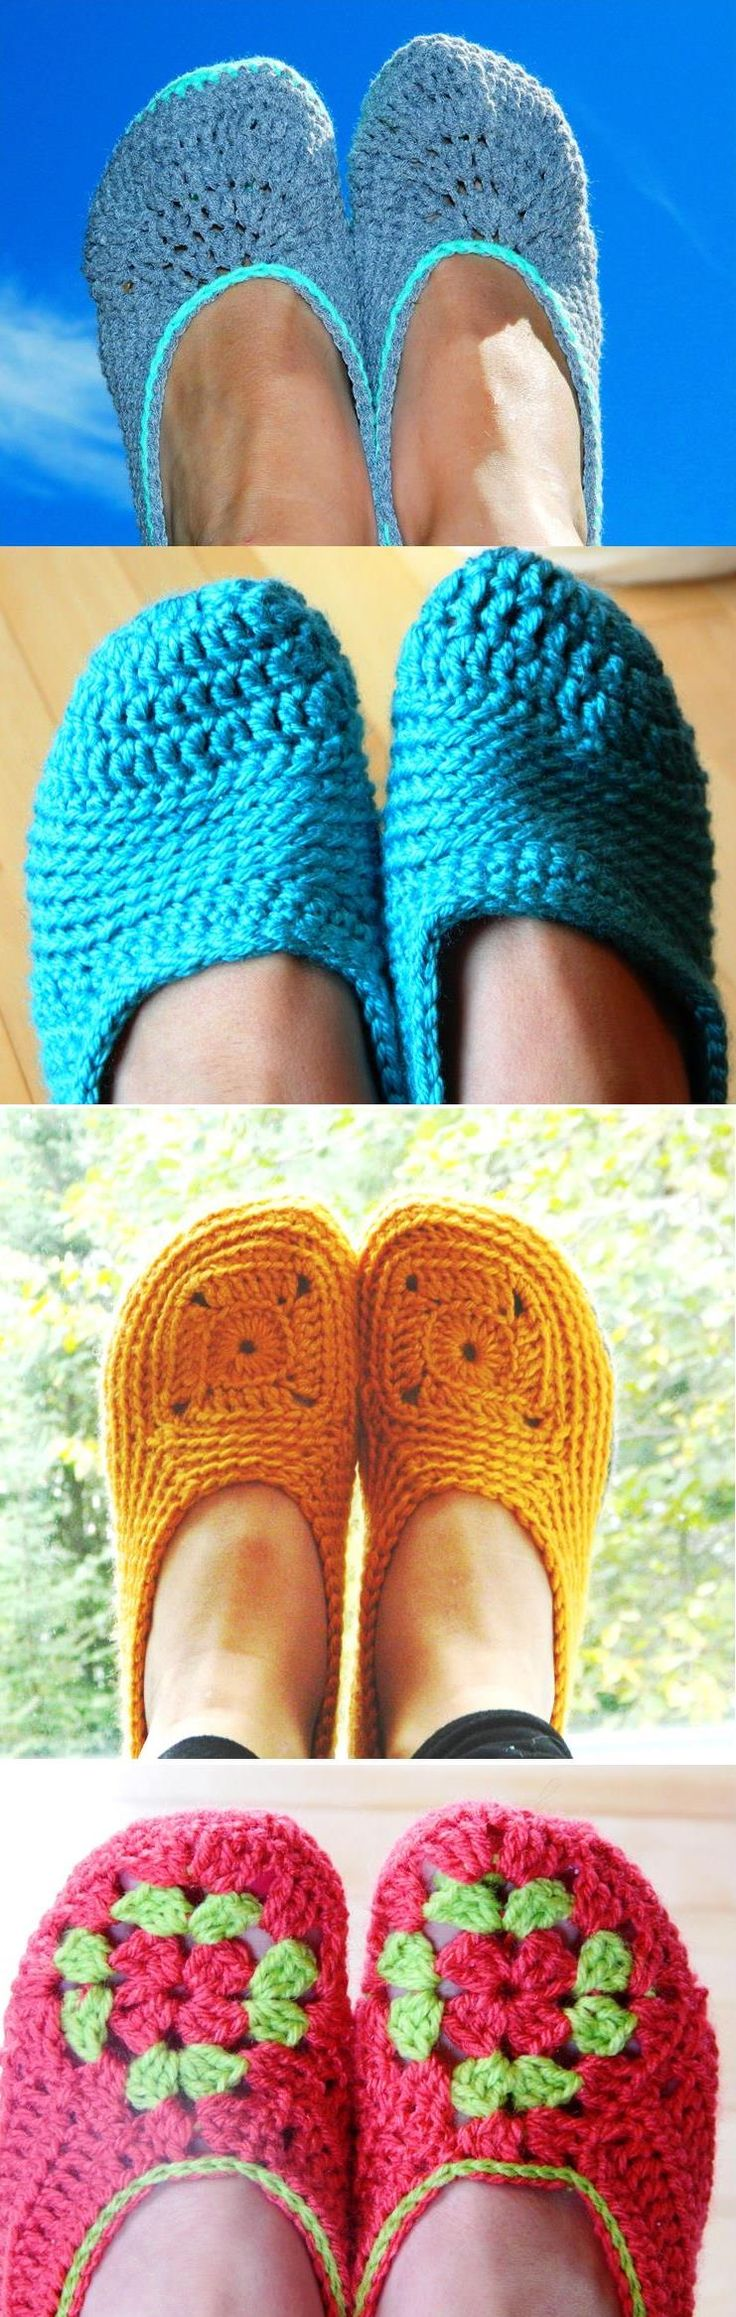 102 best crochet slippers images on pinterest boots crafts and crochet women slippers patterns bankloansurffo Image collections